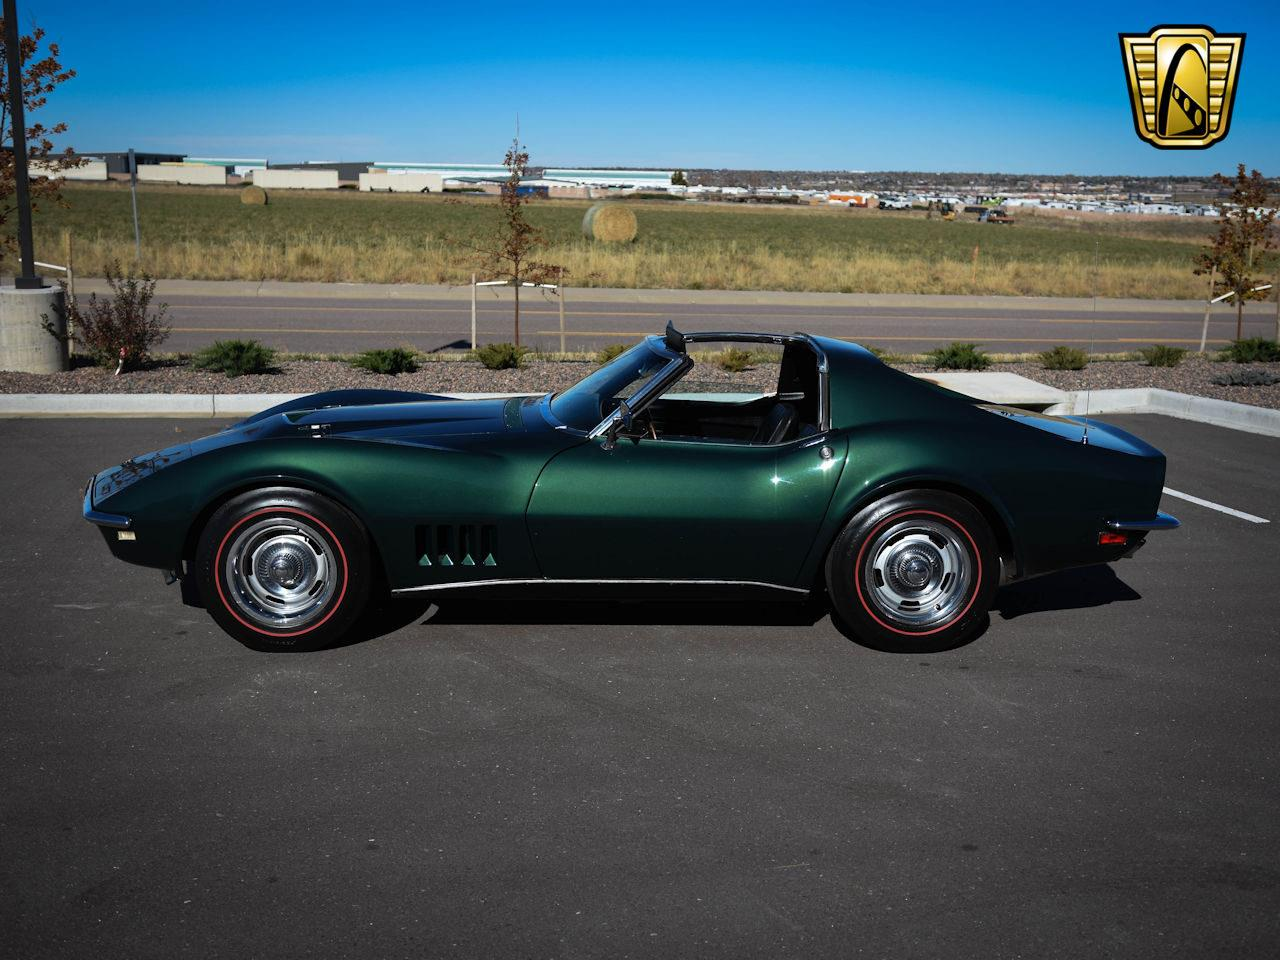 Large Picture of 1968 Corvette located in O'Fallon Illinois - $27,995.00 Offered by Gateway Classic Cars - Denver - M9KE